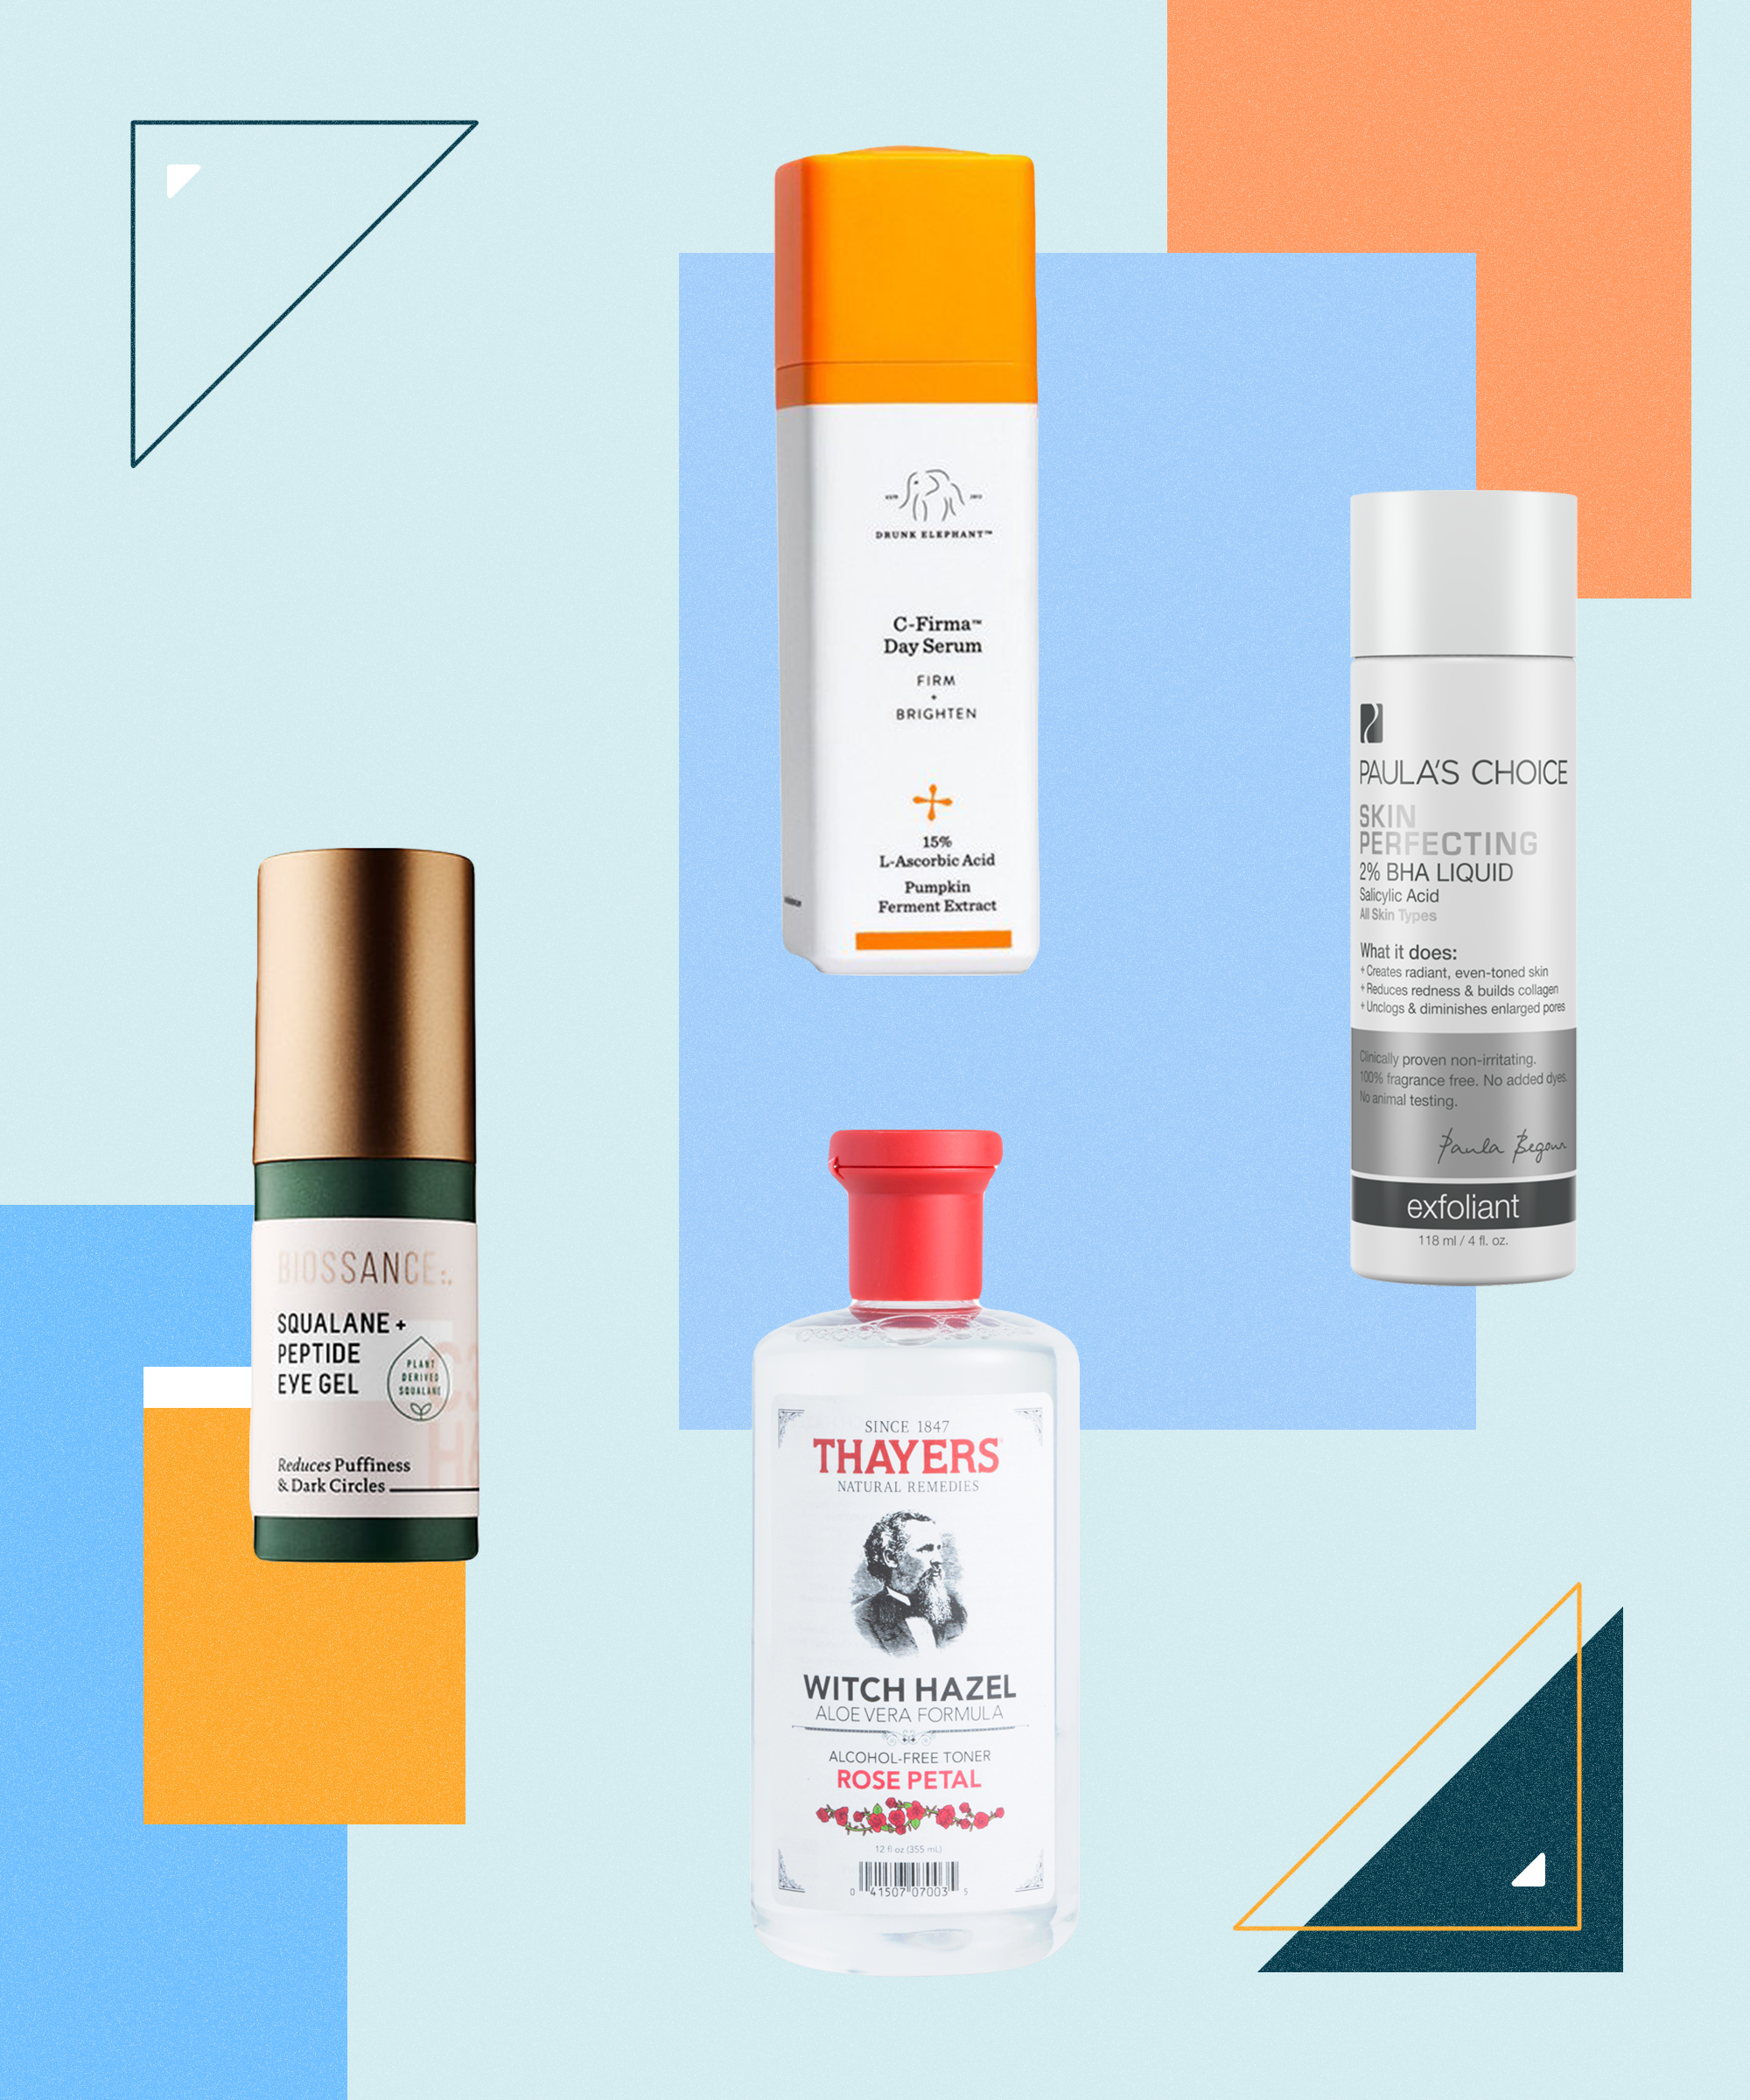 8 Skin-Care Products You Should Be Using, Ranked By Importance